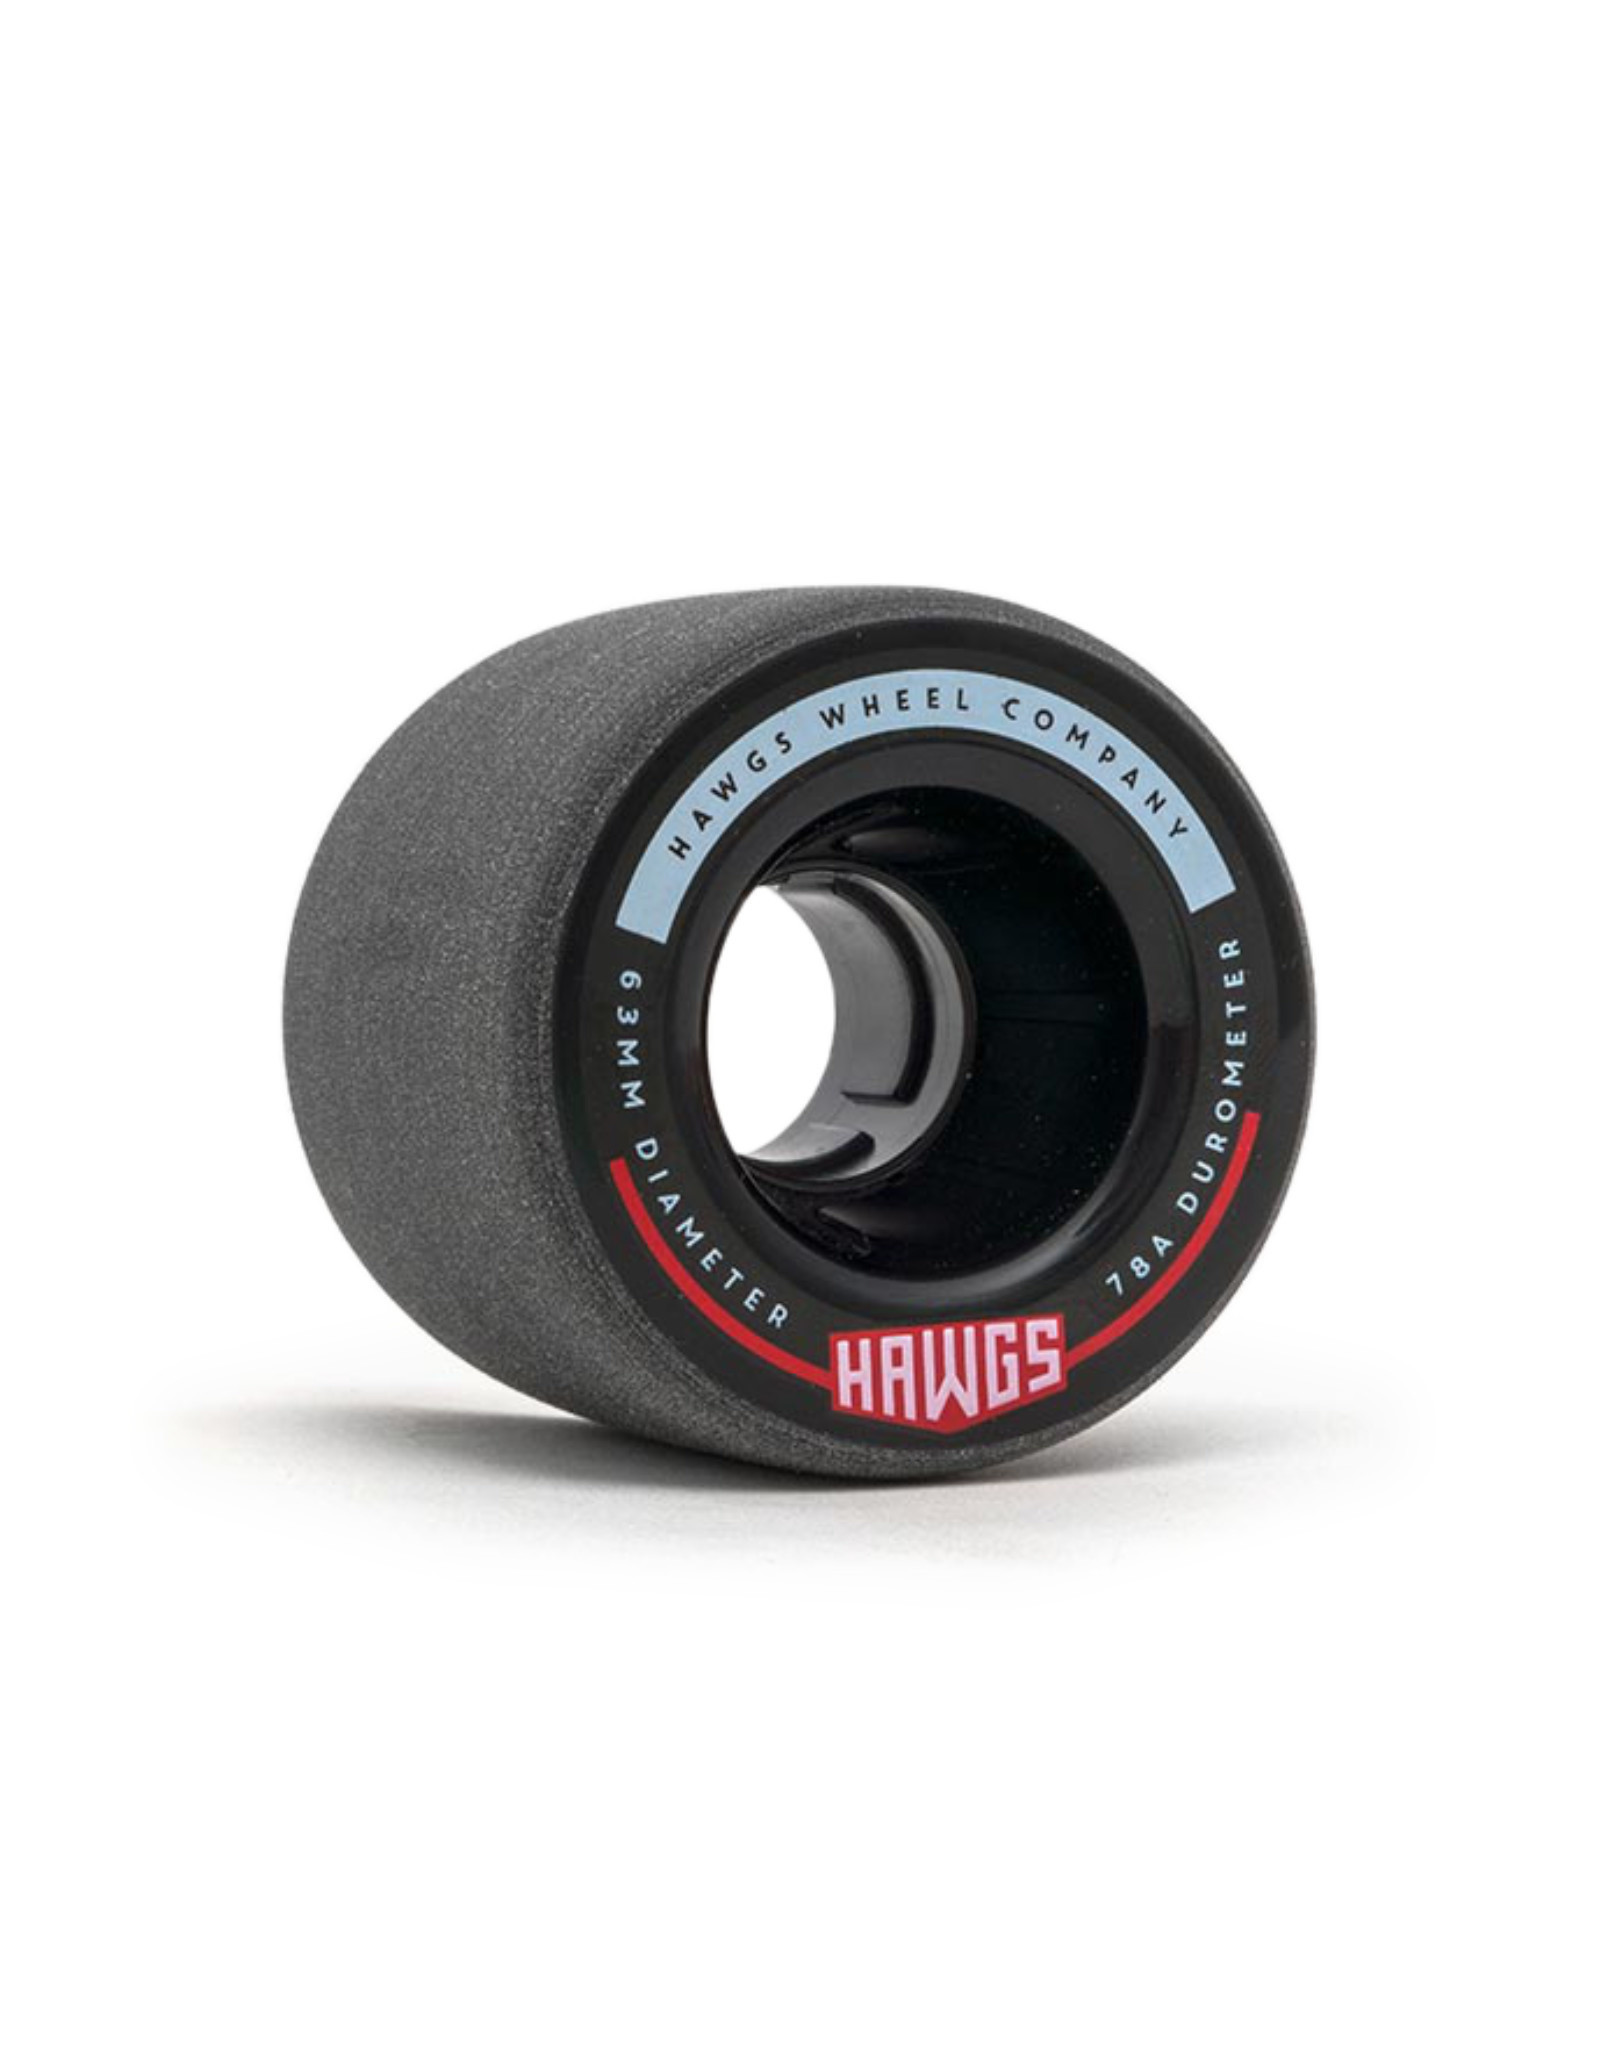 Hawgs Wheels Hawgs Fatty Wheels 63 mm 78A Black Set of 4